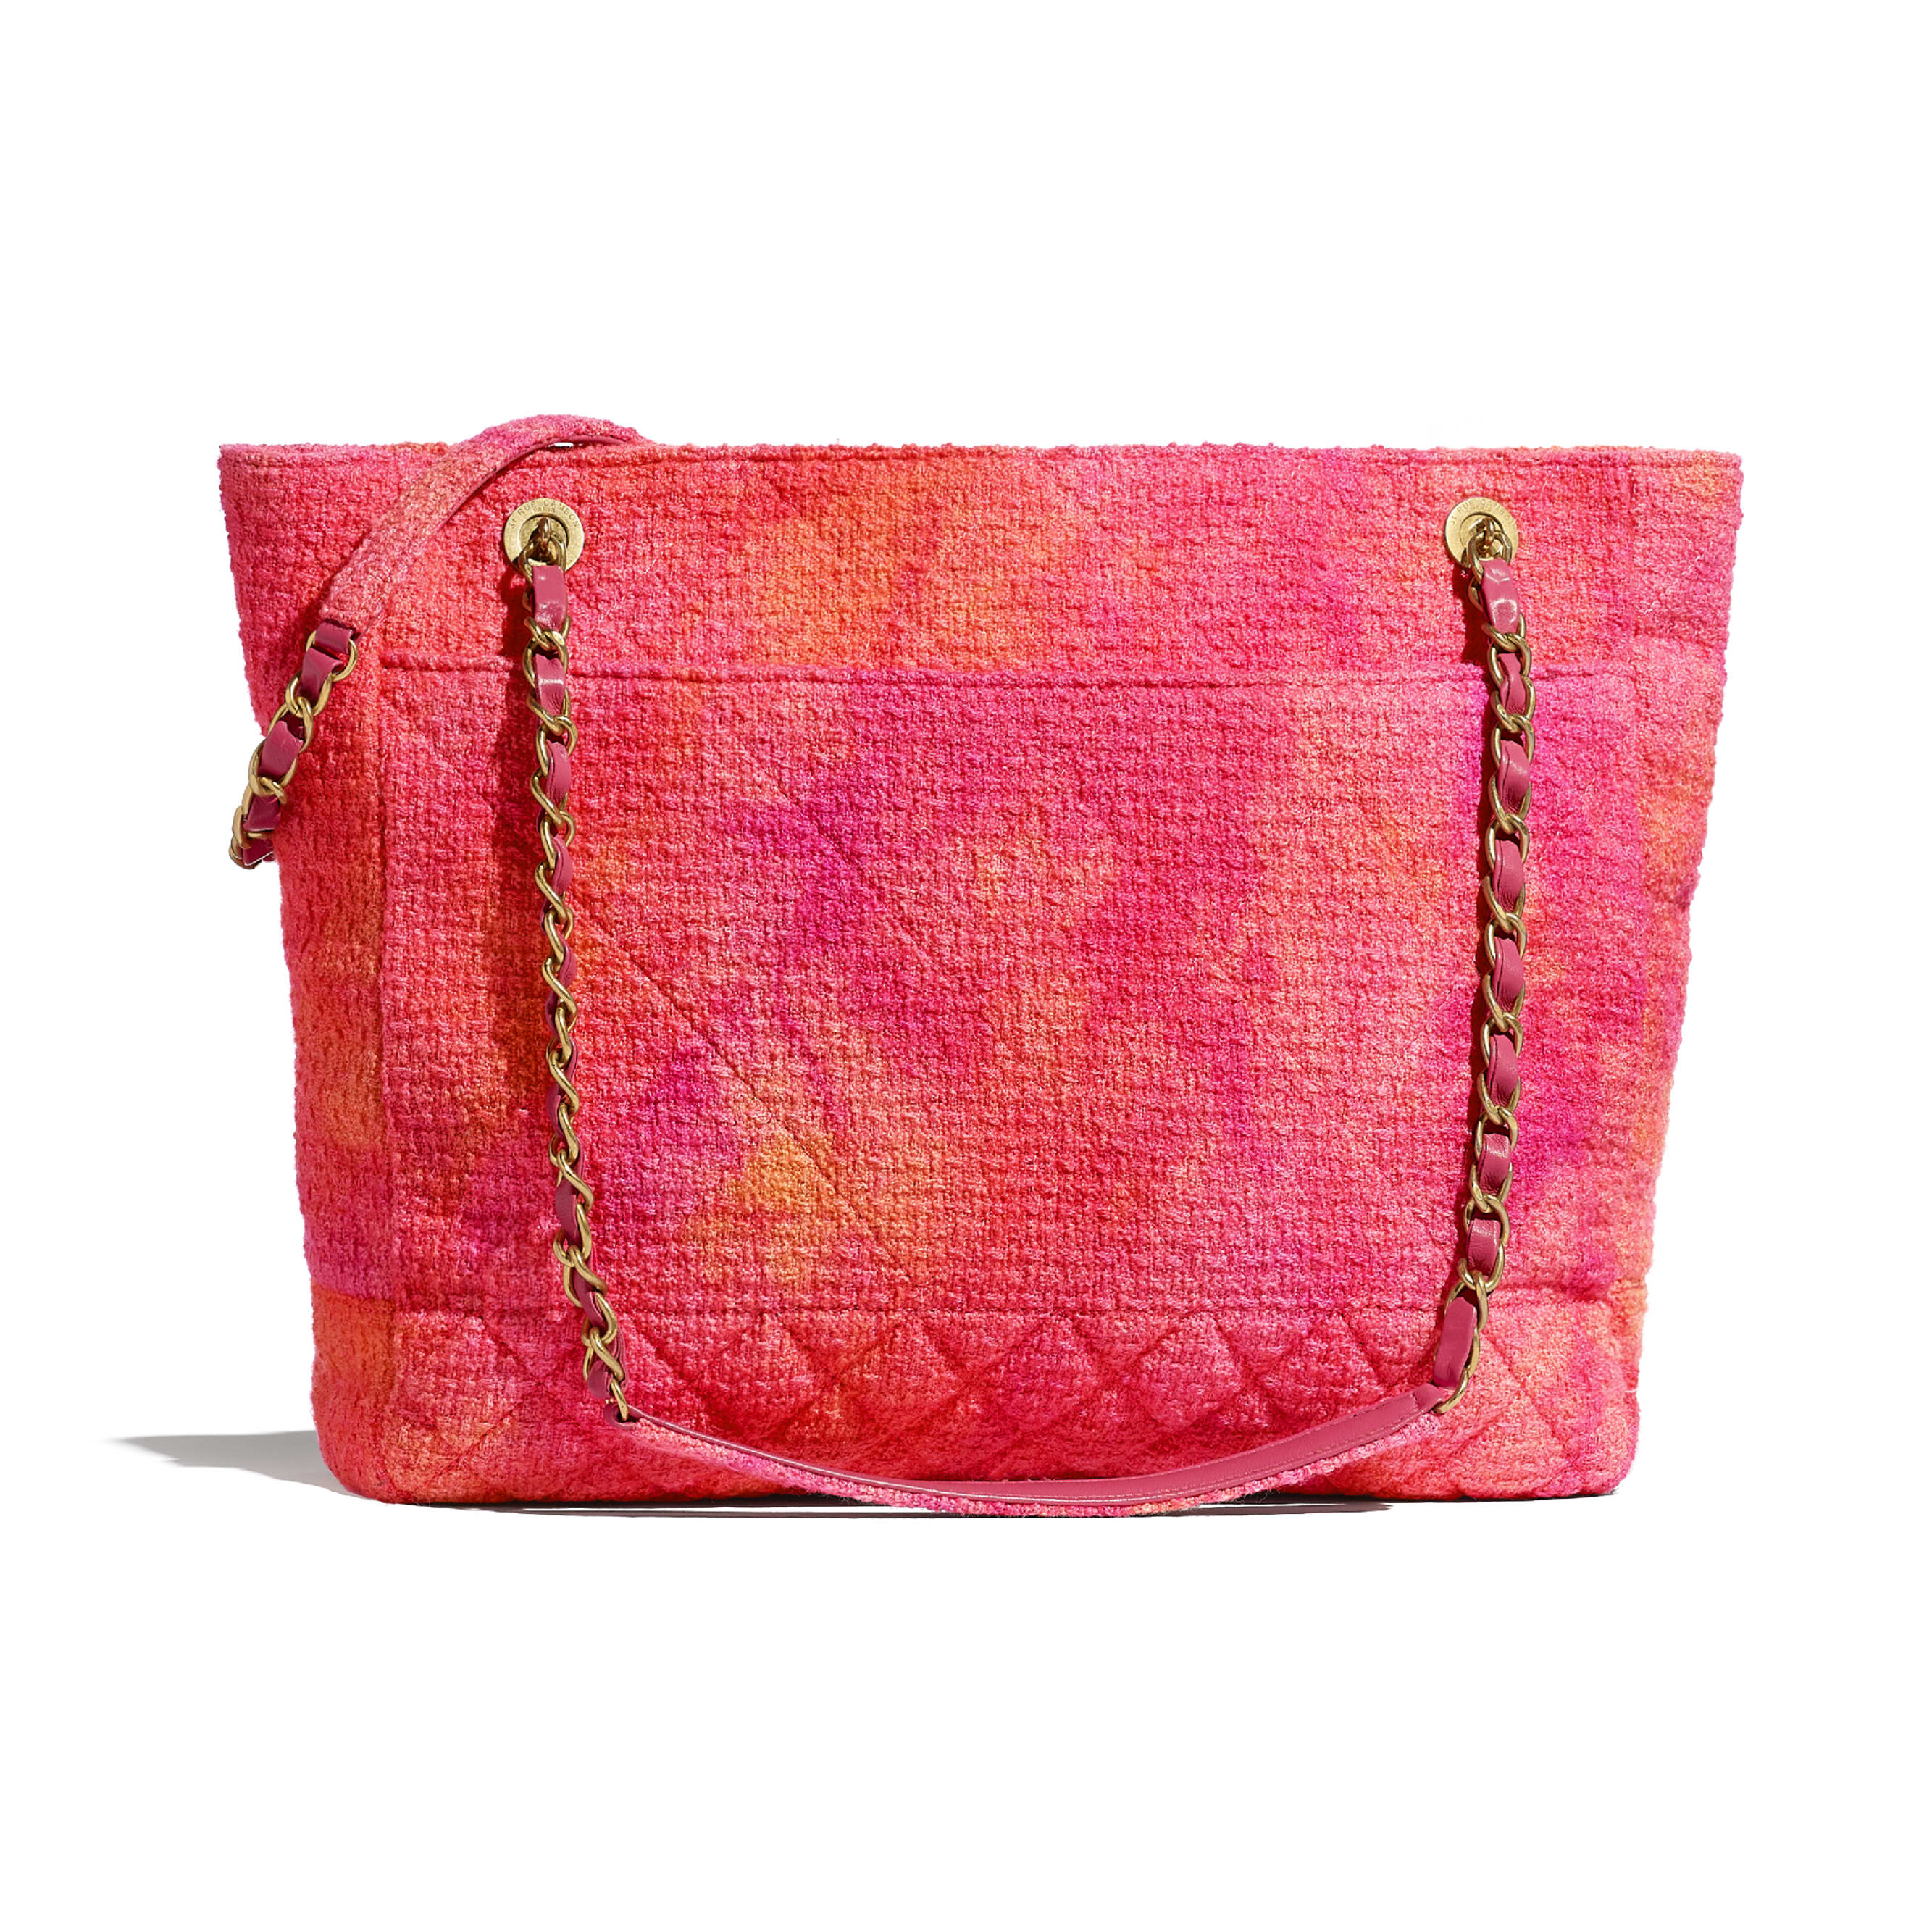 Large Tote - Coral, Pink & Orange - Cotton Tweed & Gold-Tone Metal - CHANEL - Alternative view - see standard sized version